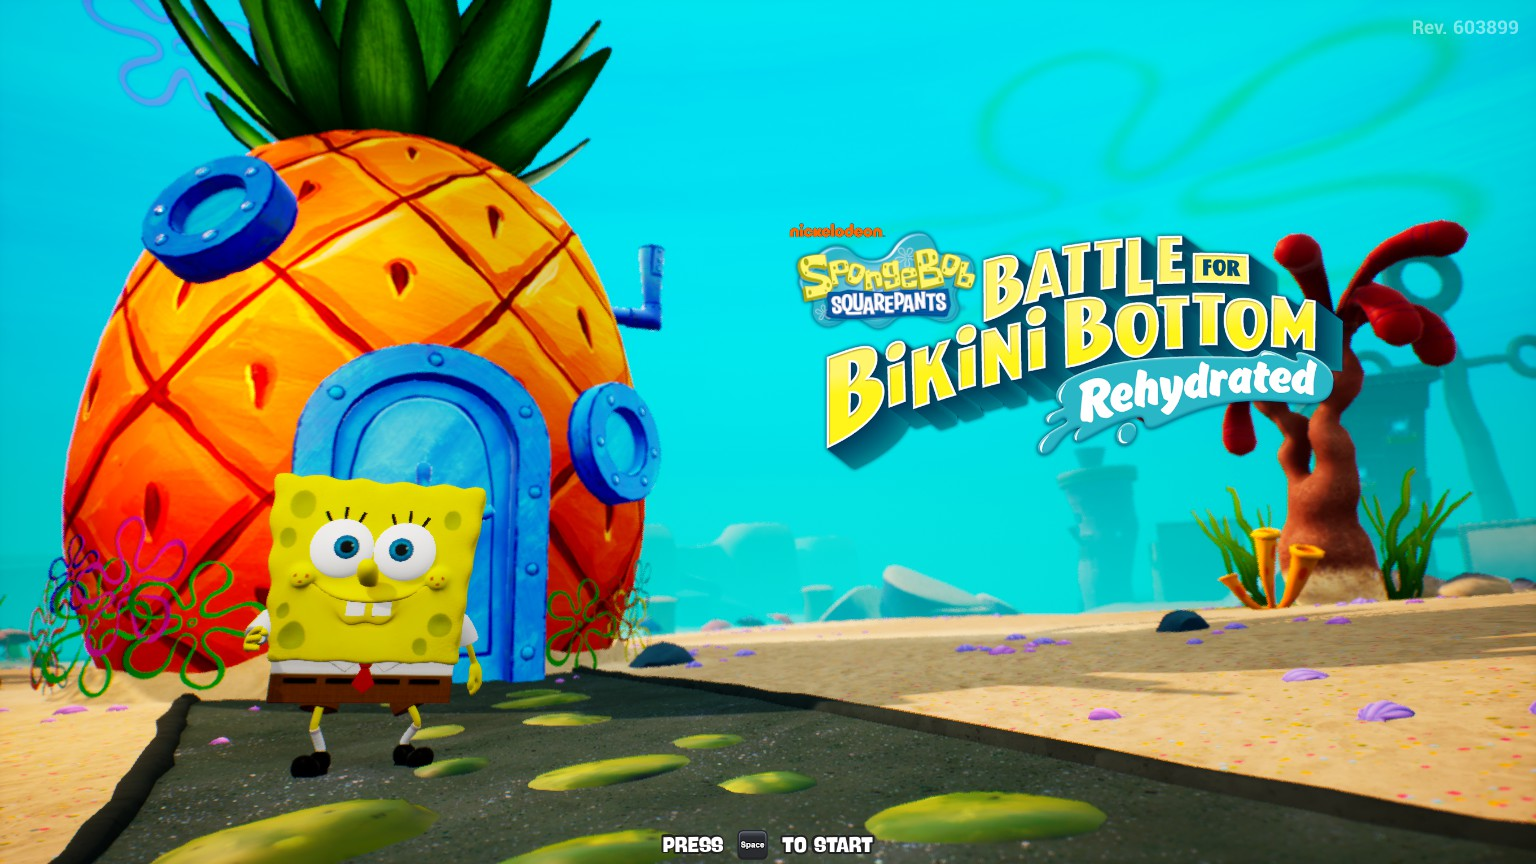 SpongeBob SquarePants: Battle For Bikini Bottom Rehydrated (PC)